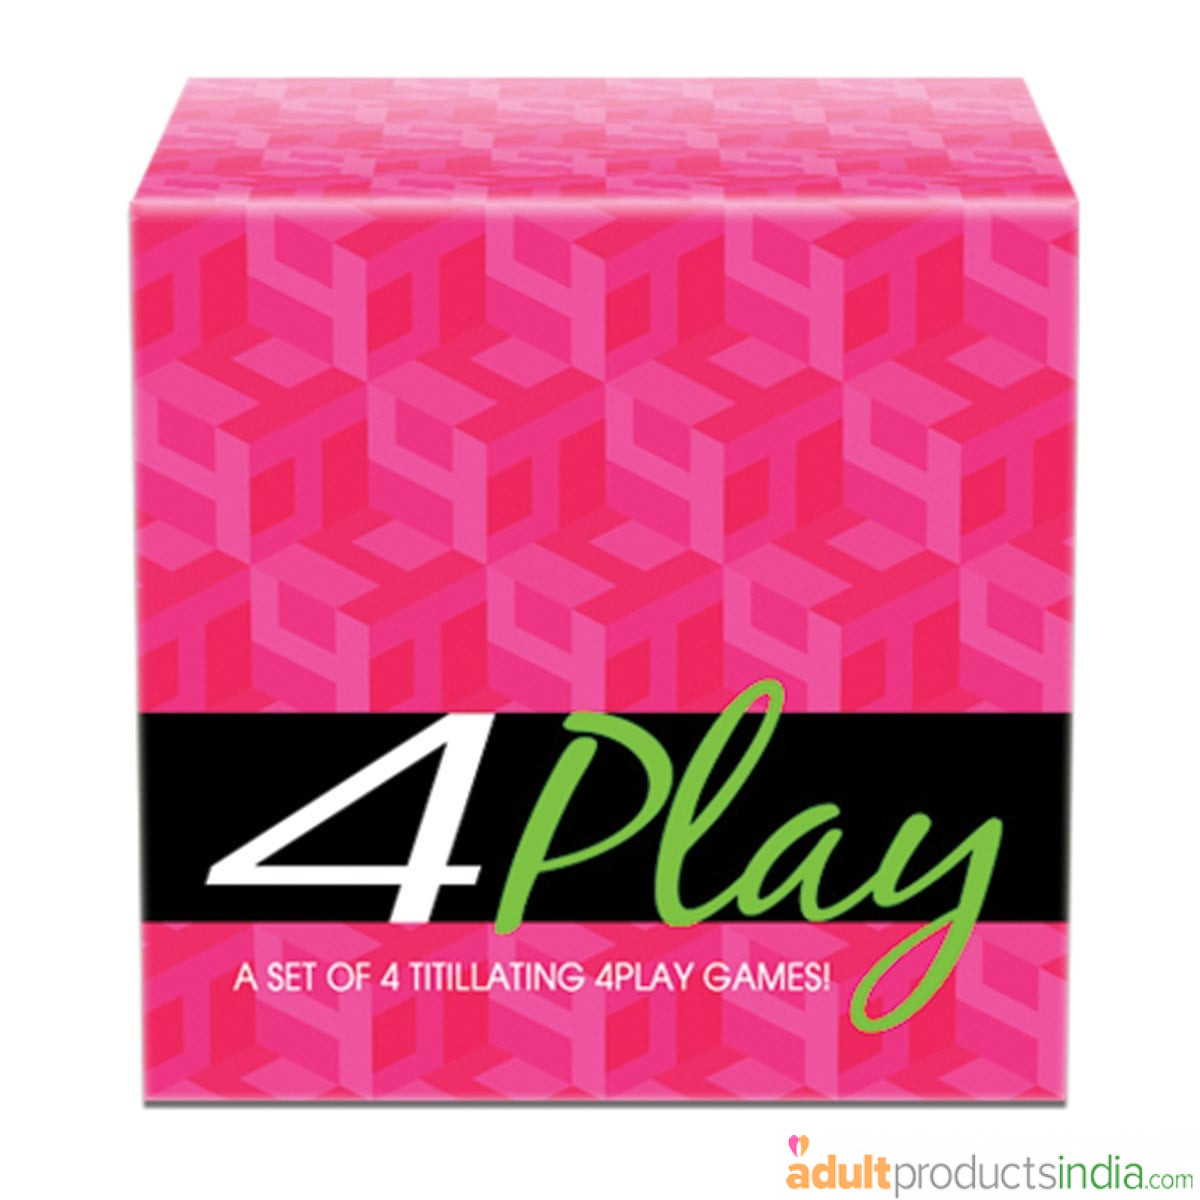 4Play Board Game